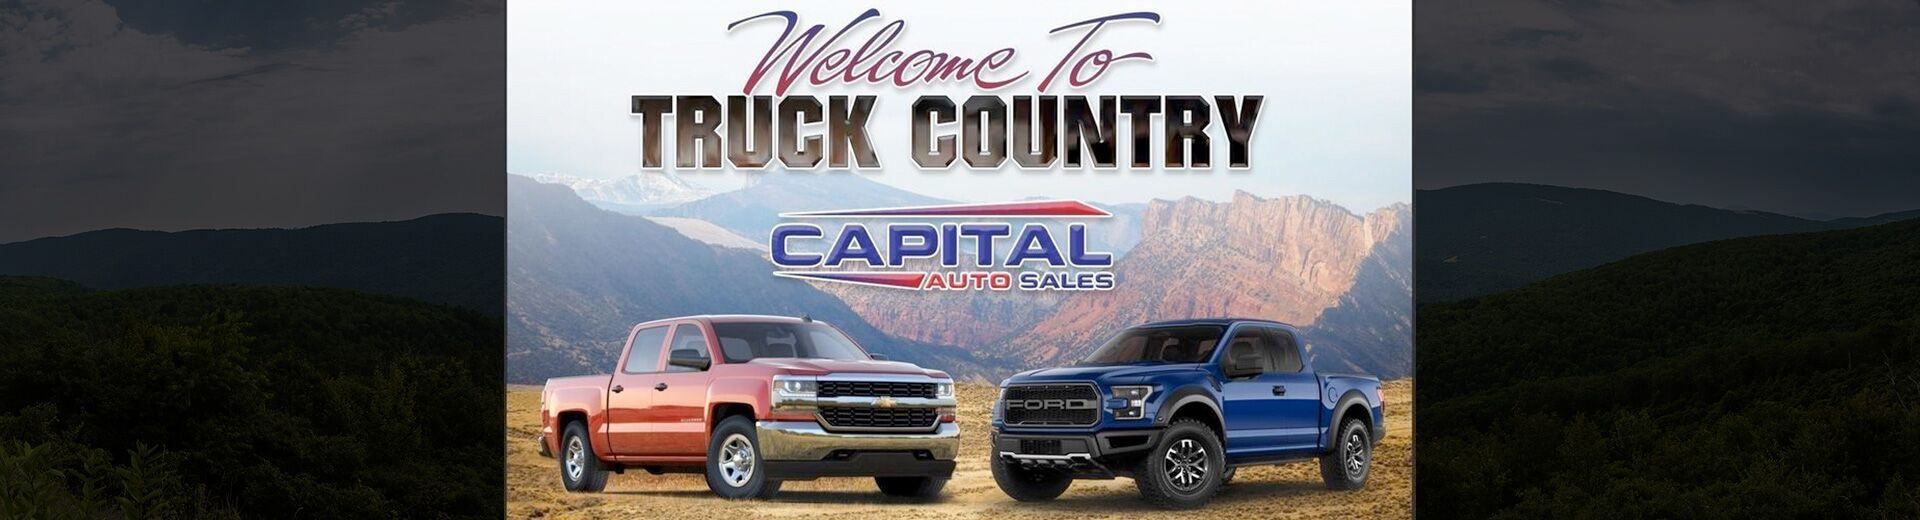 Truck Country